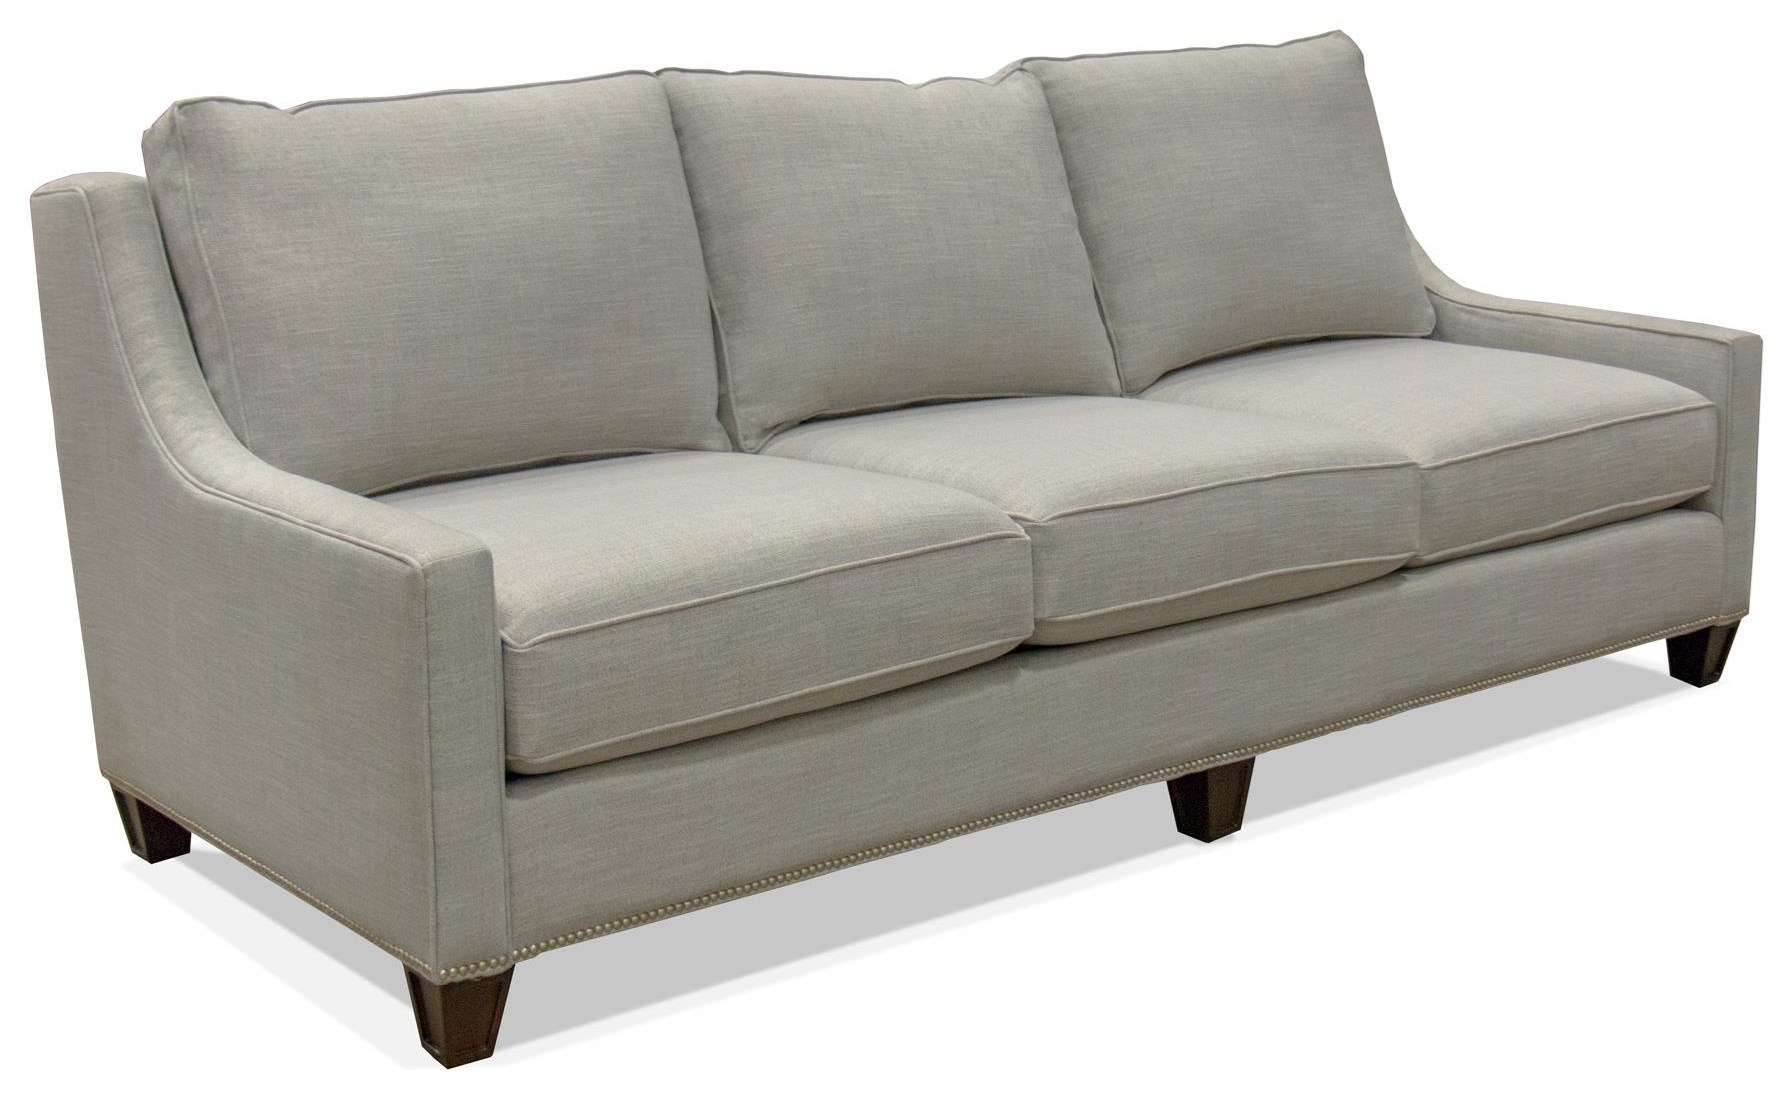 Sofa Outlets Exeter Exeter Sofa By Bassett At Great American Home Store